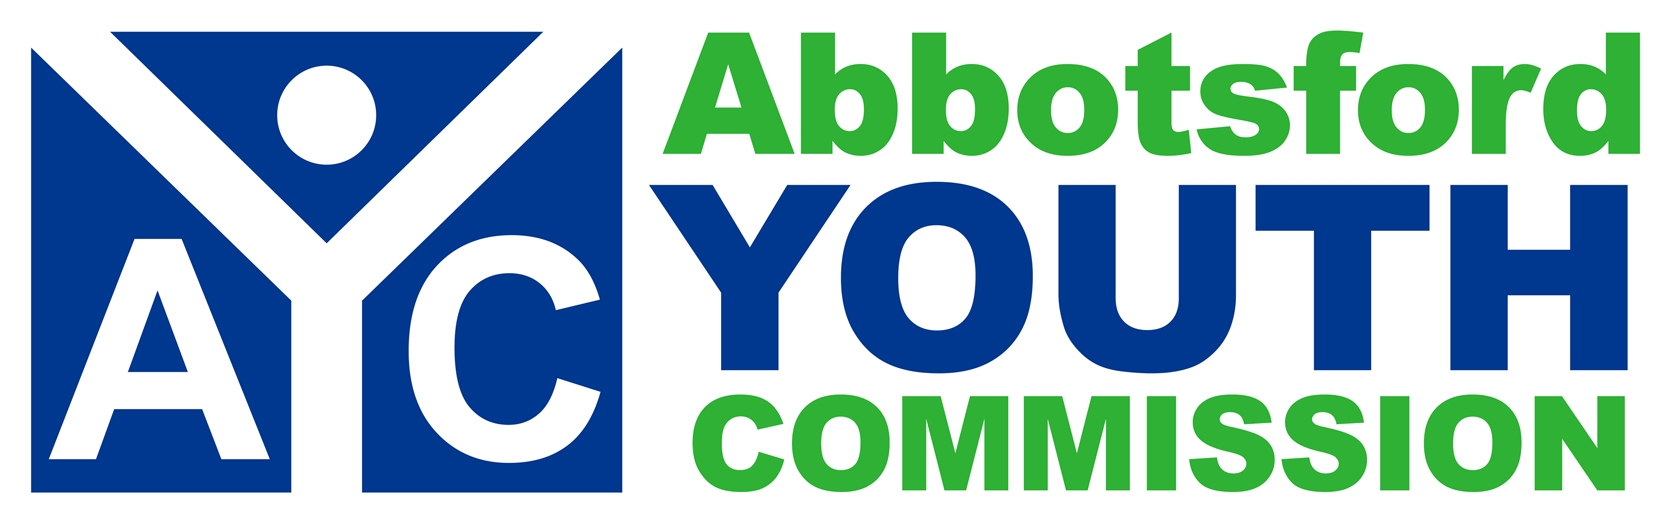 Abbotsford Youth Commission